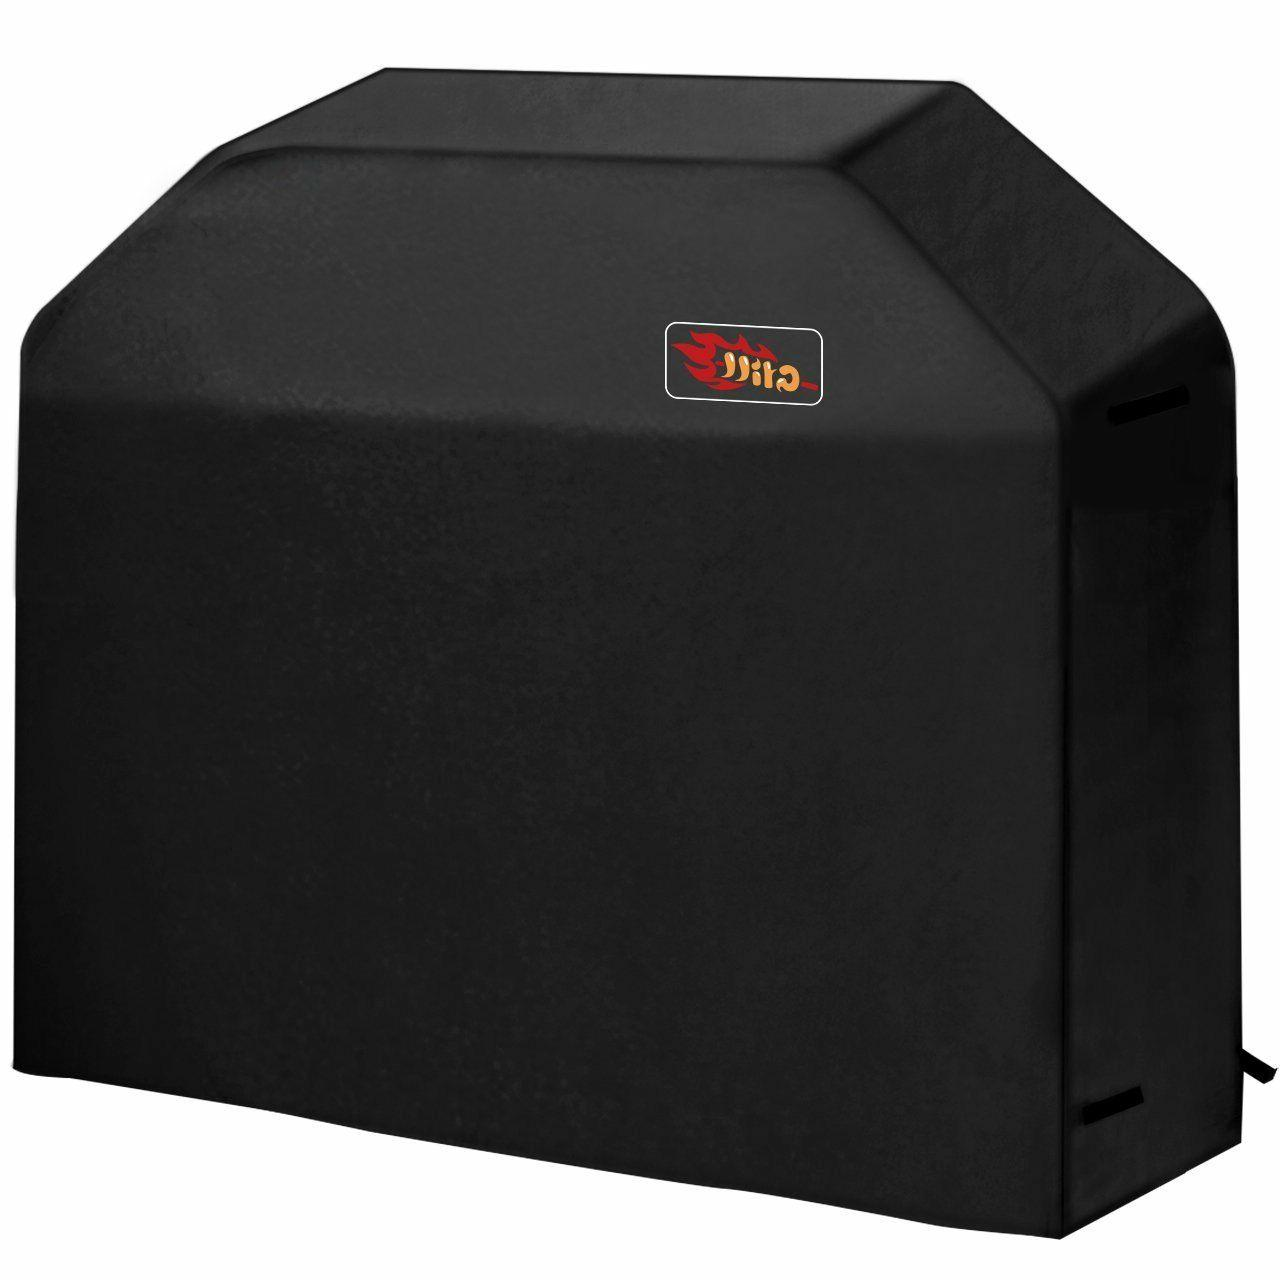 "VicTsing 3-4 Burner BBQ Gas Grill Cover 58"" 600D Waterproof"